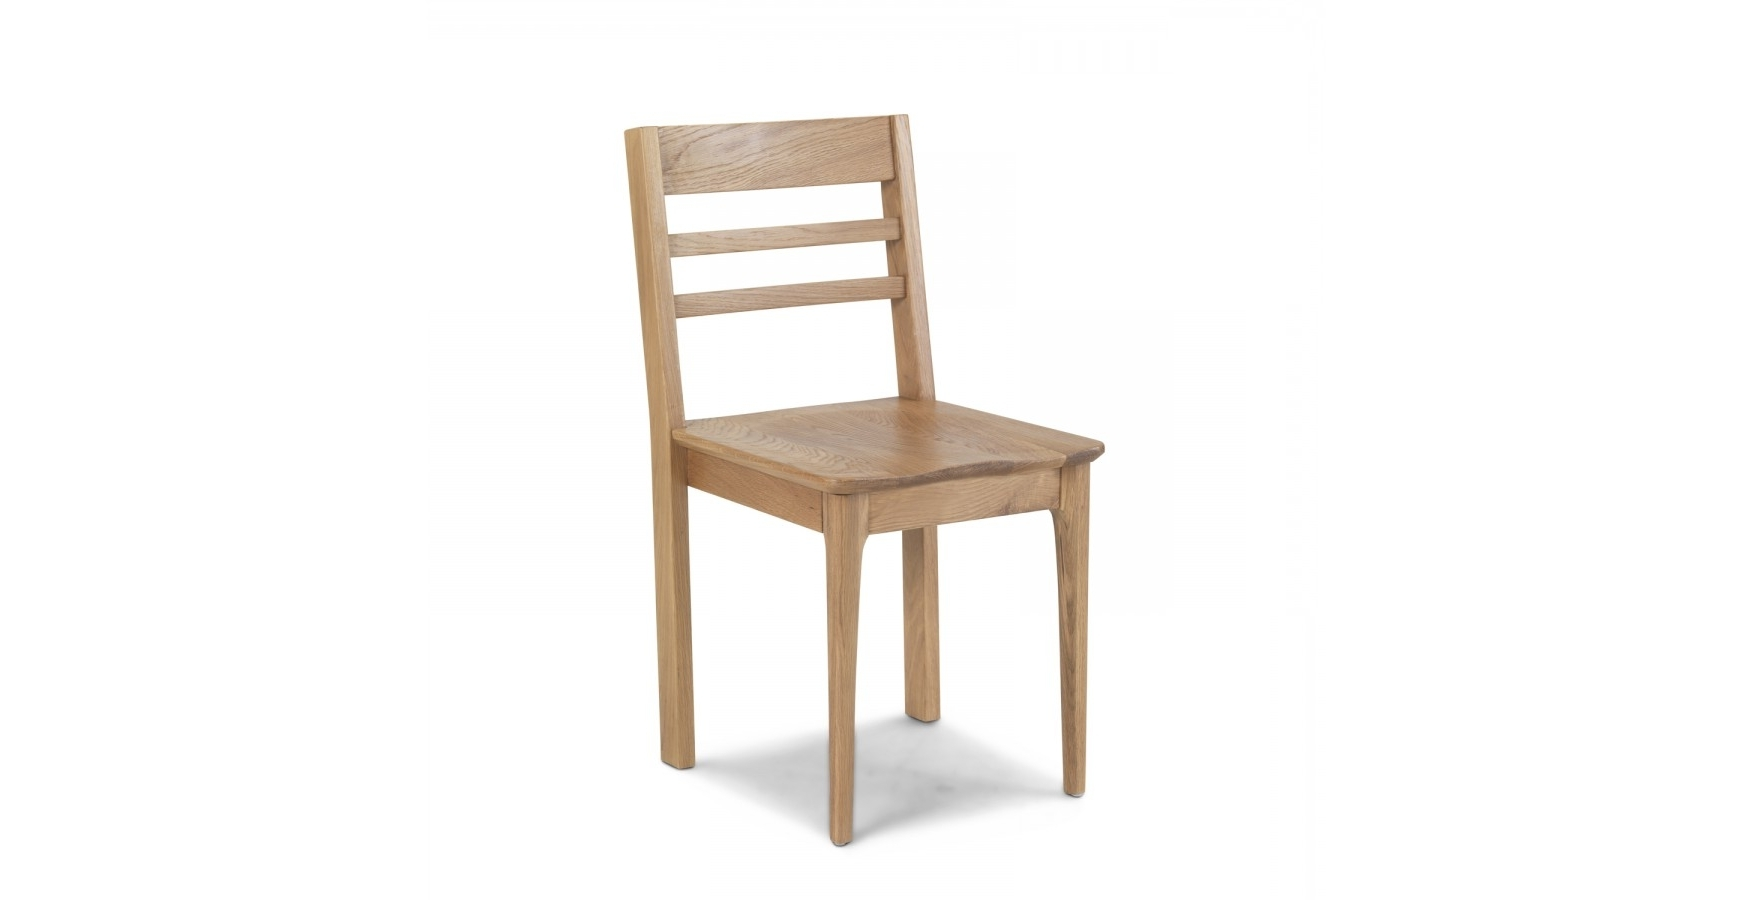 Fashionable Enfield Oak Dining Chair – Lifestyle Furniture Uk With Oak Dining Chairs (View 20 of 25)